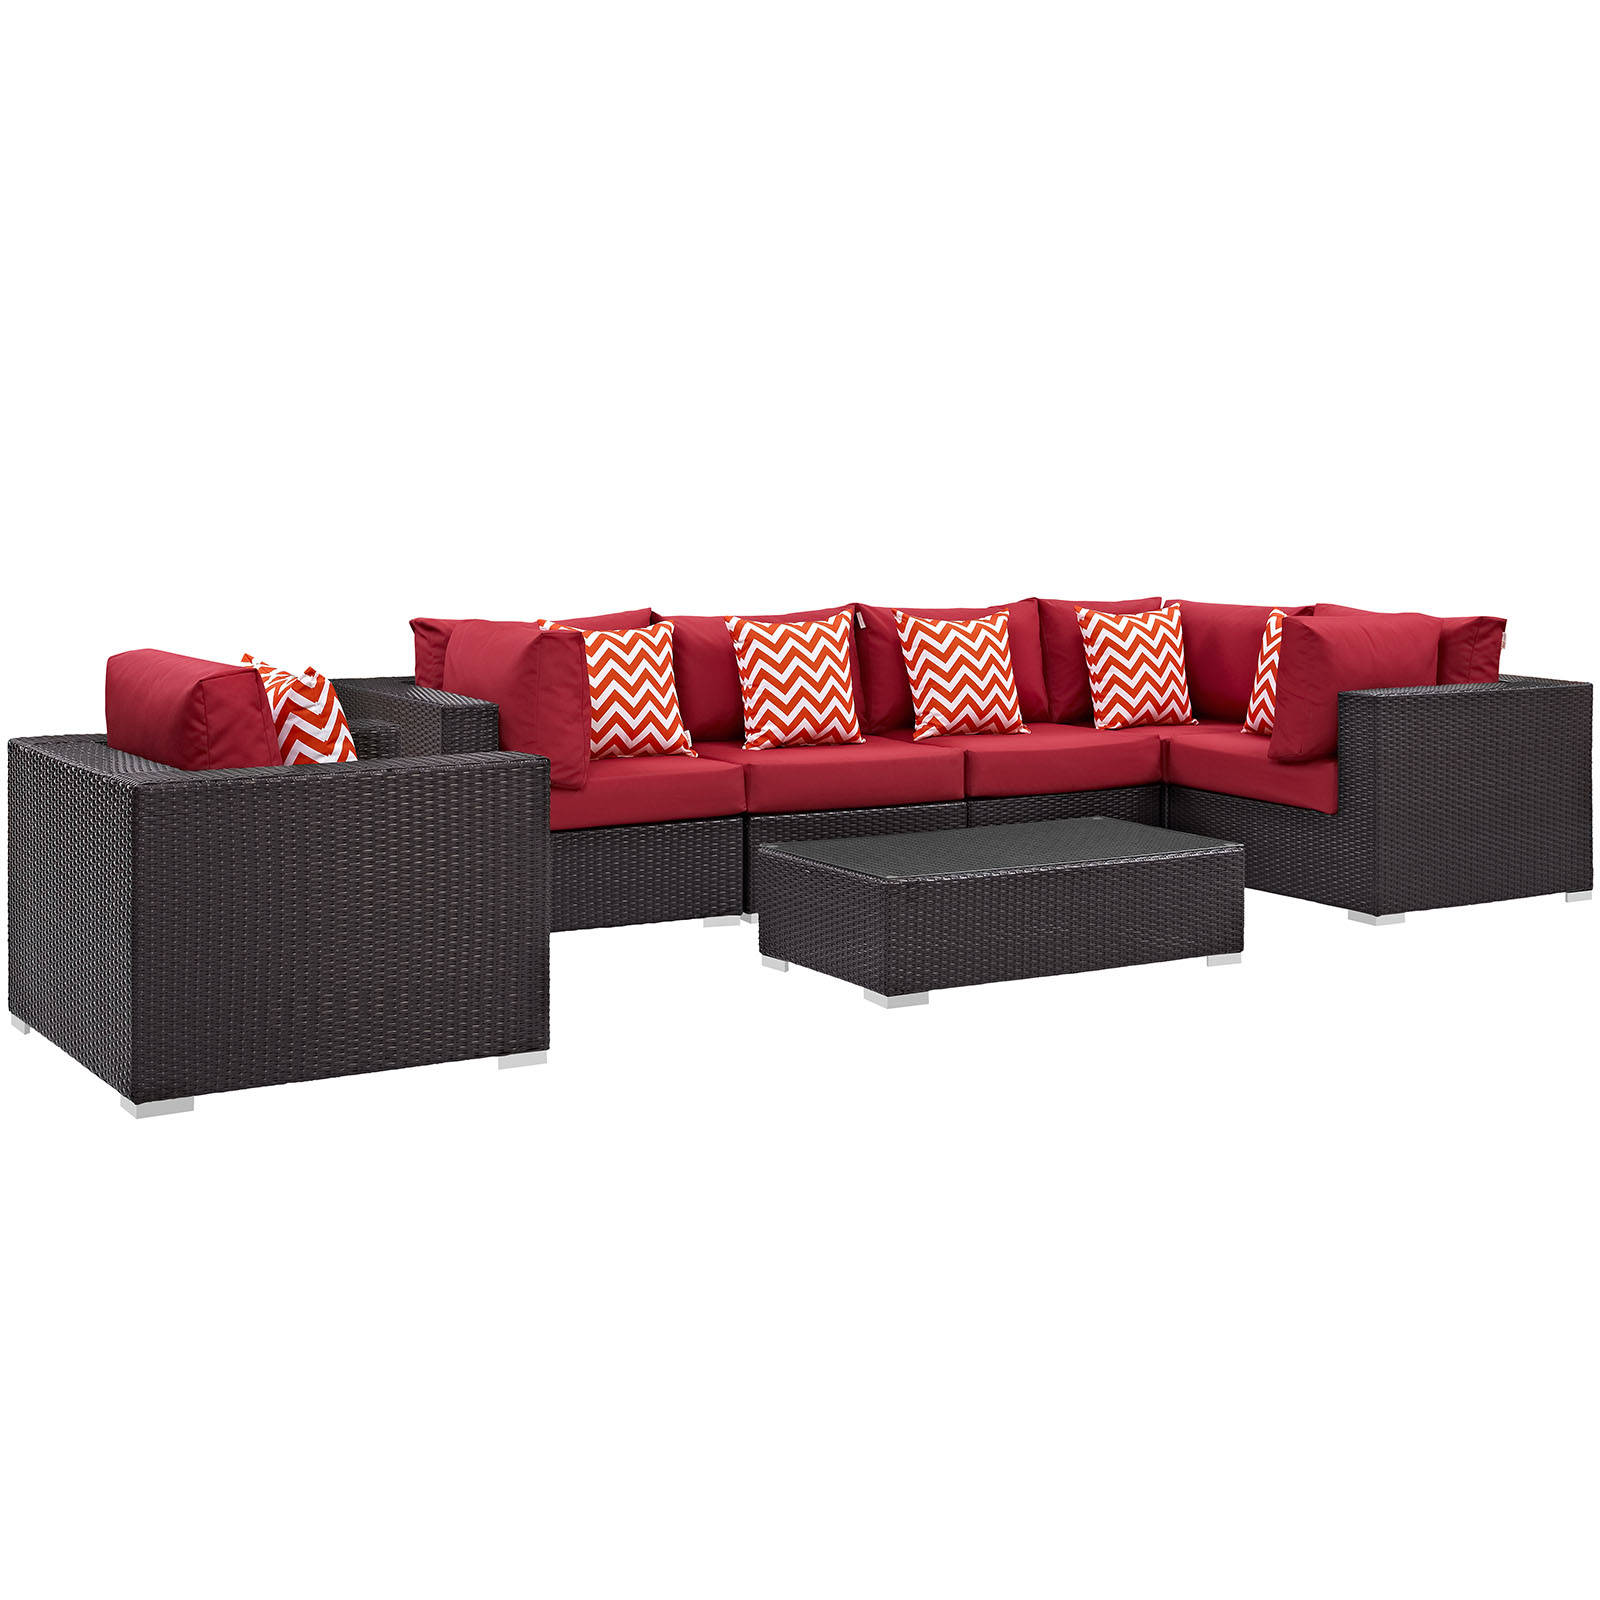 Modway Furniture Convene Espresso Red 7pc Outdoor Sectional Set